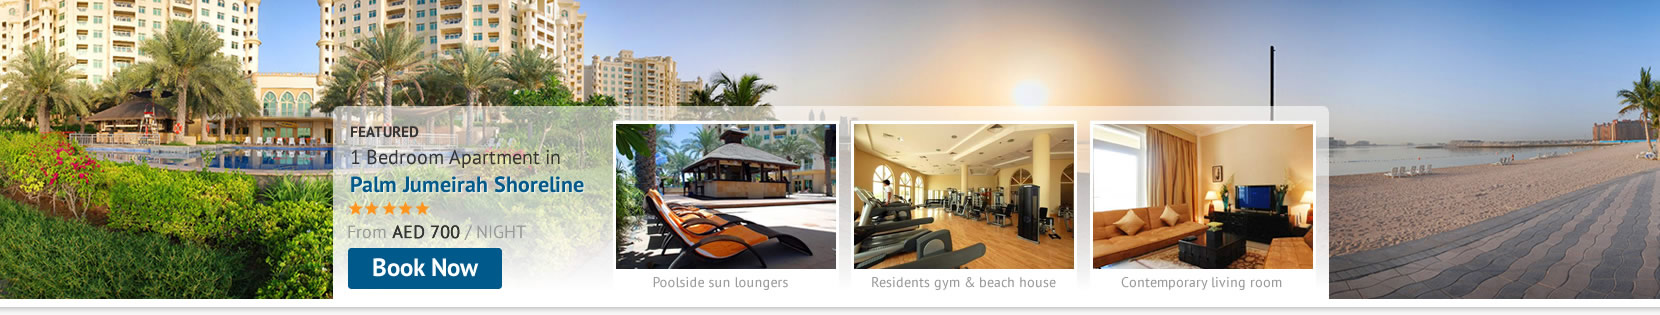 Stay Self-Catering at the Palm Jumeirah Shoreline Residence Holiday Apartments